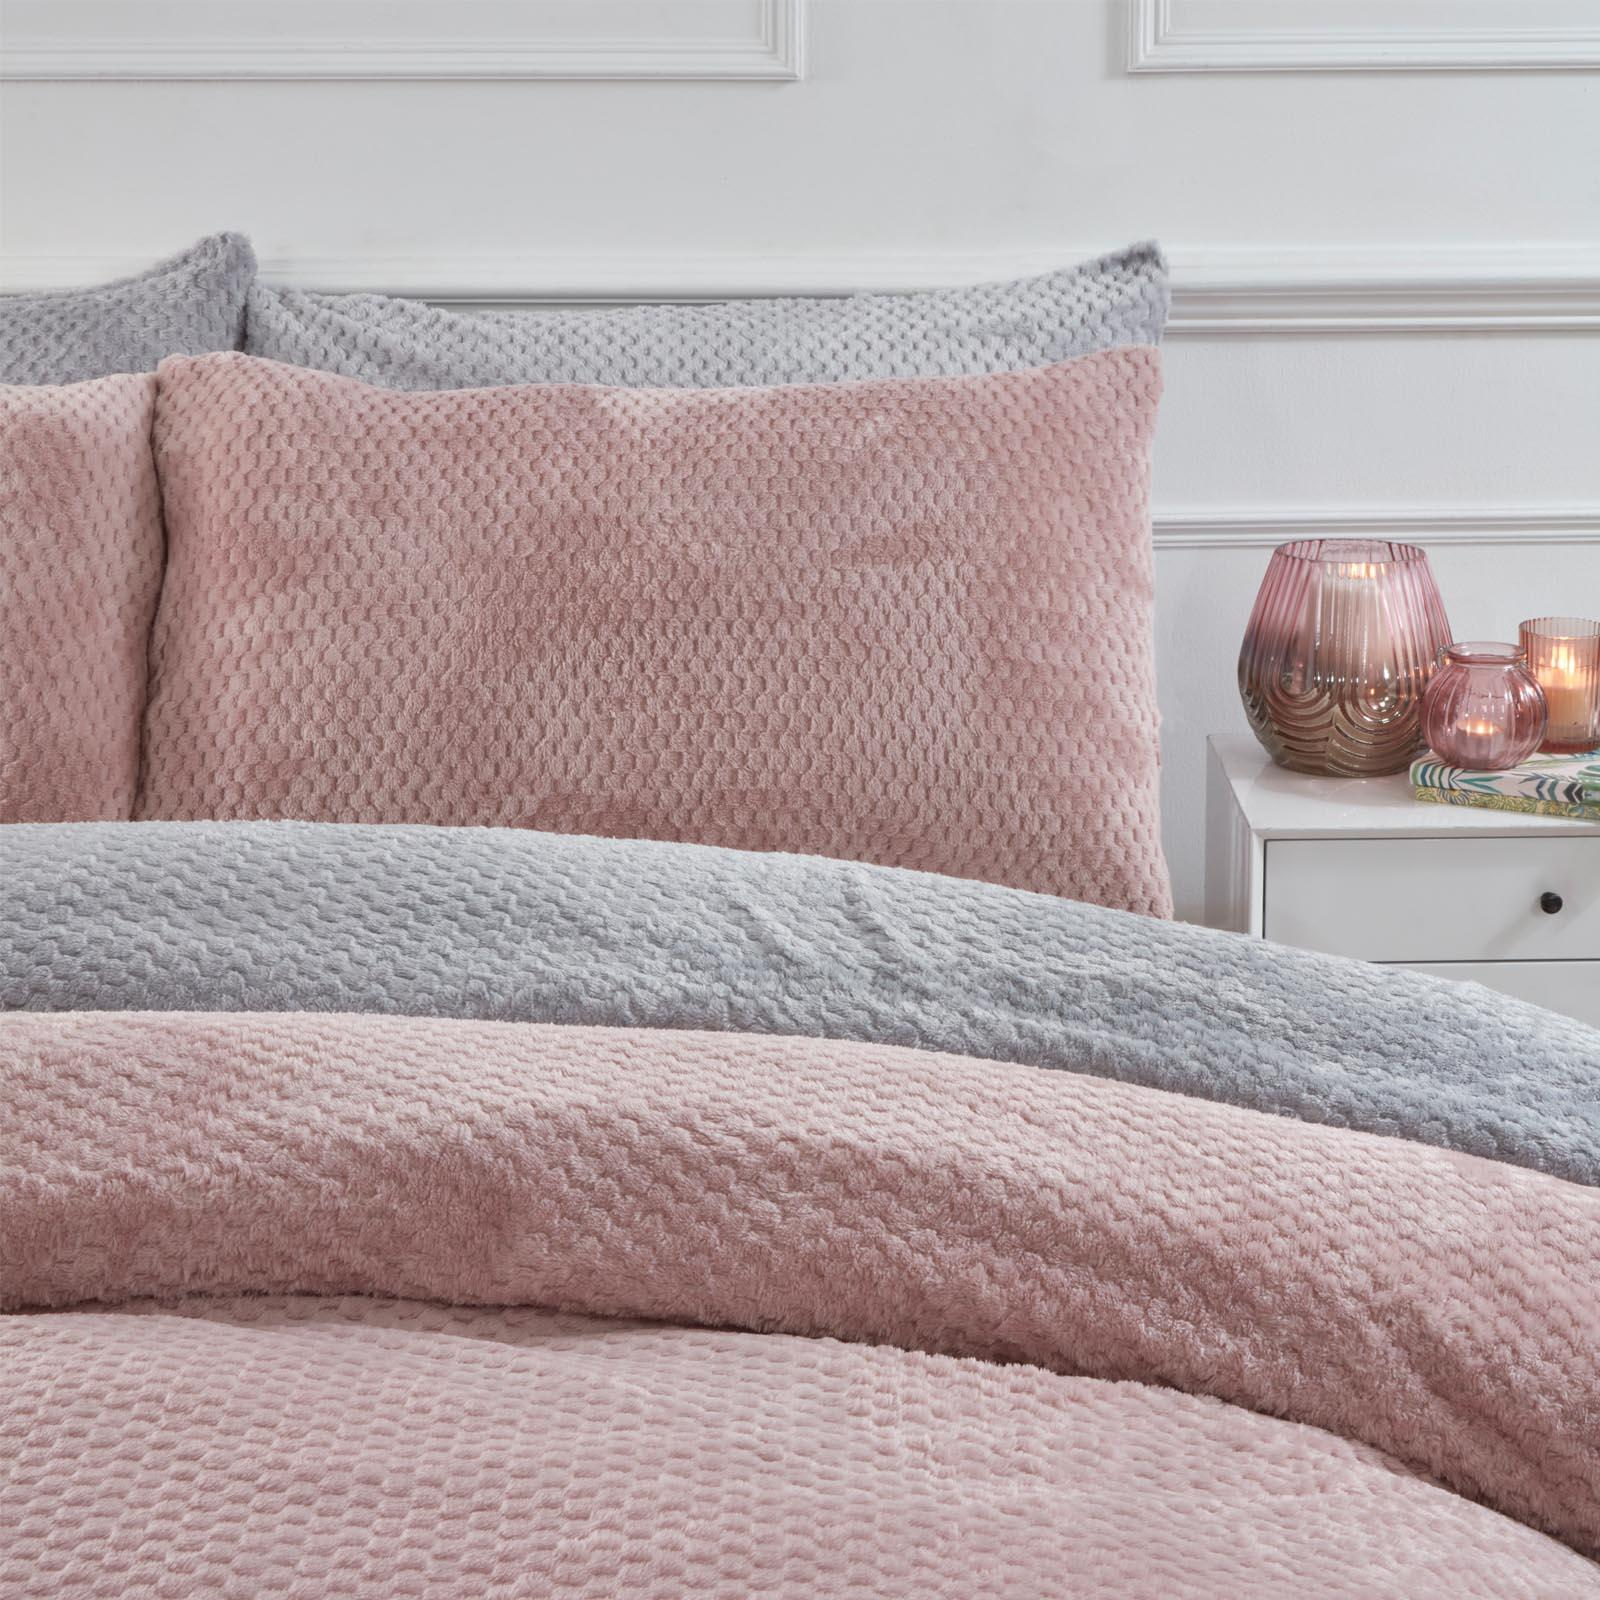 Brentfords-Warm-Waffle-Fleece-Duvet-Cover-with-Pillowcase-Soft-Cosy-Bedding-Set thumbnail 8